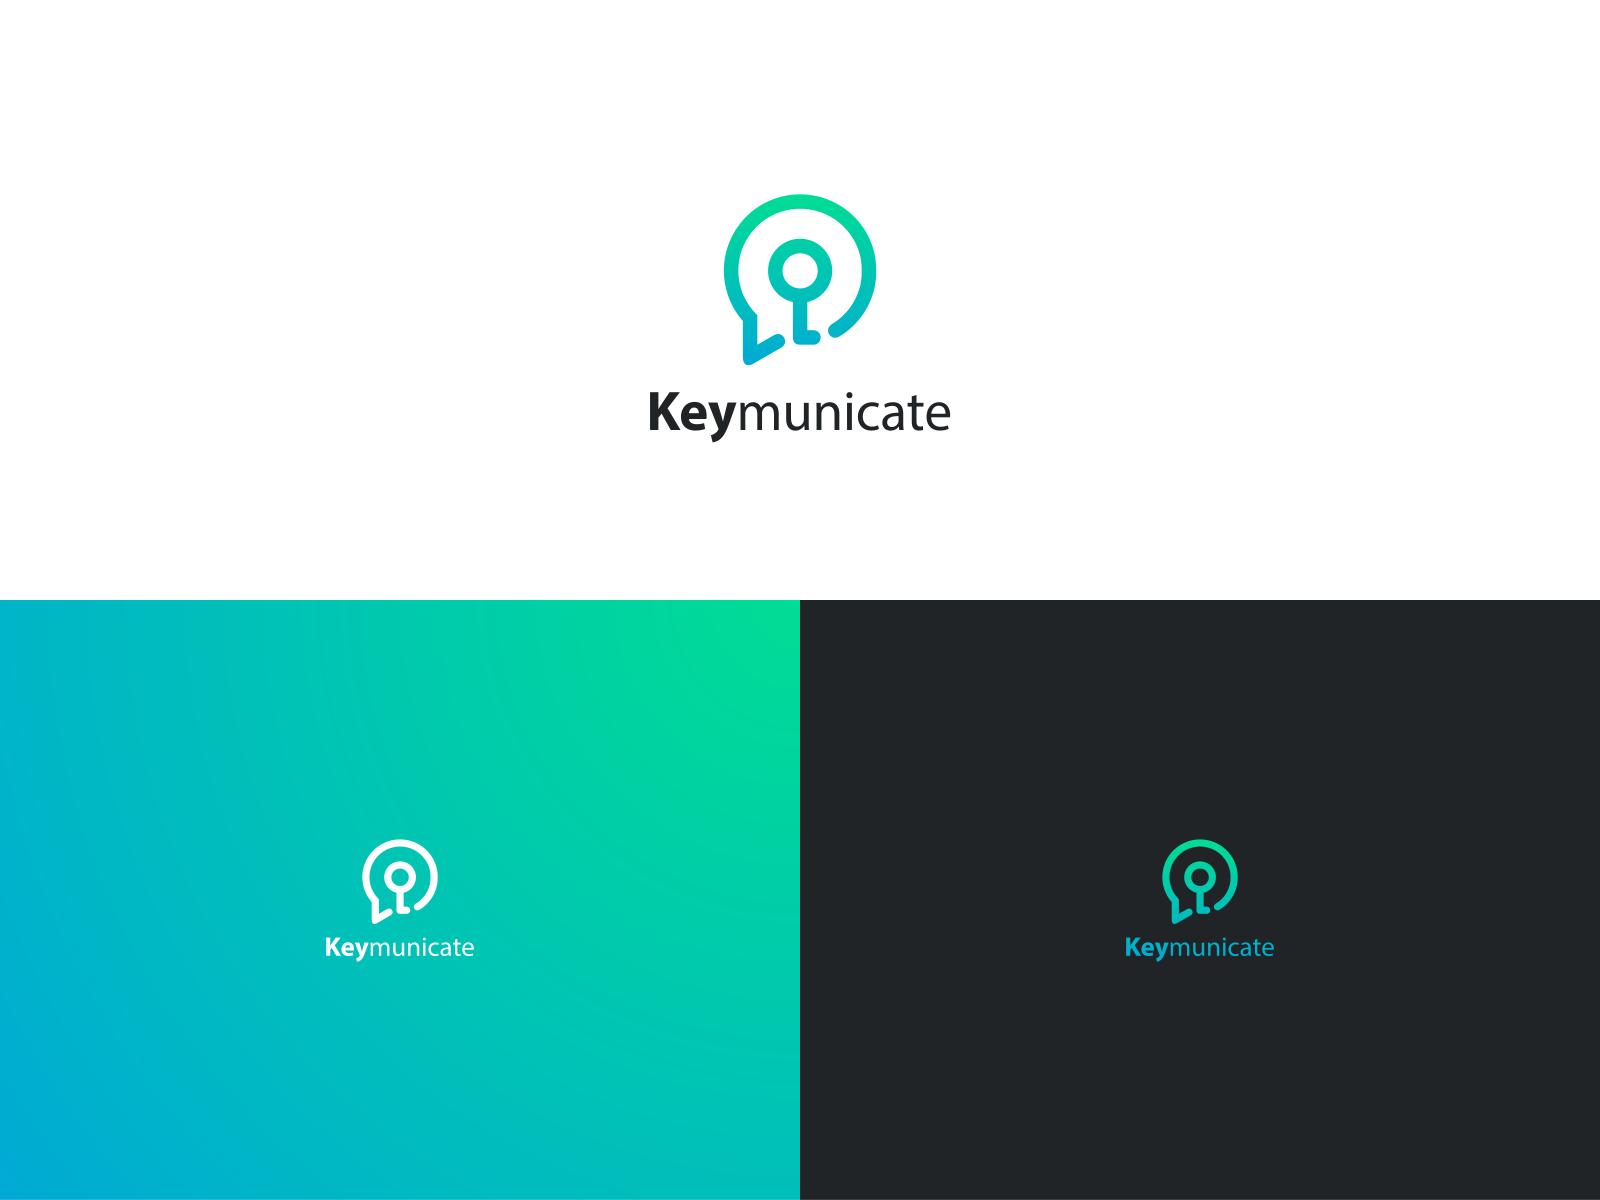 Keymunicate - Could be key but that's not up to me